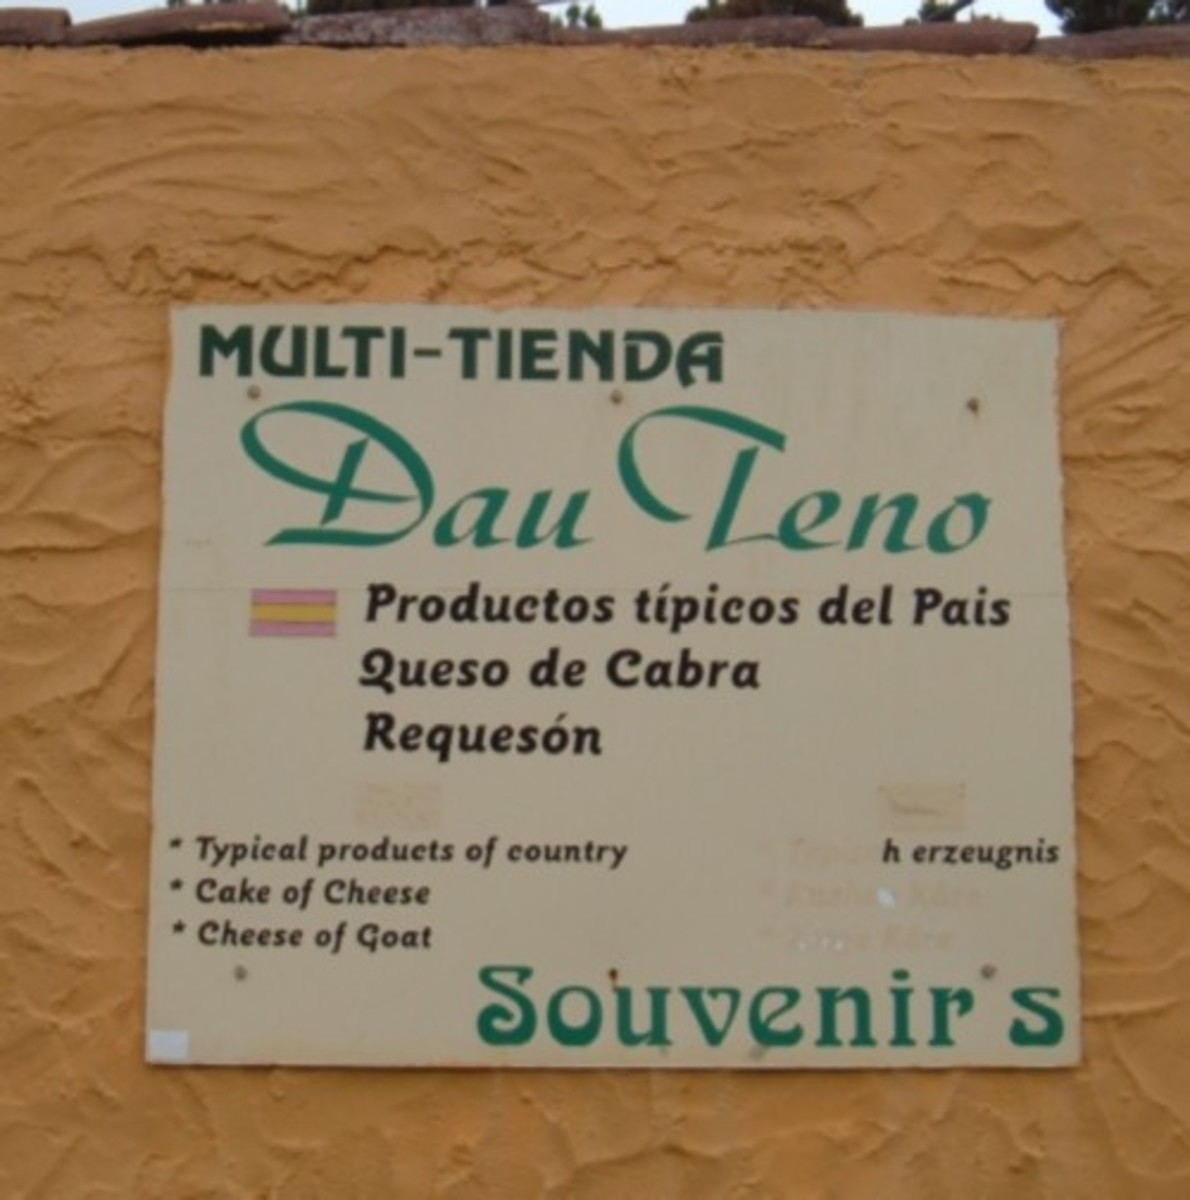 Shop sign in Teno Alto